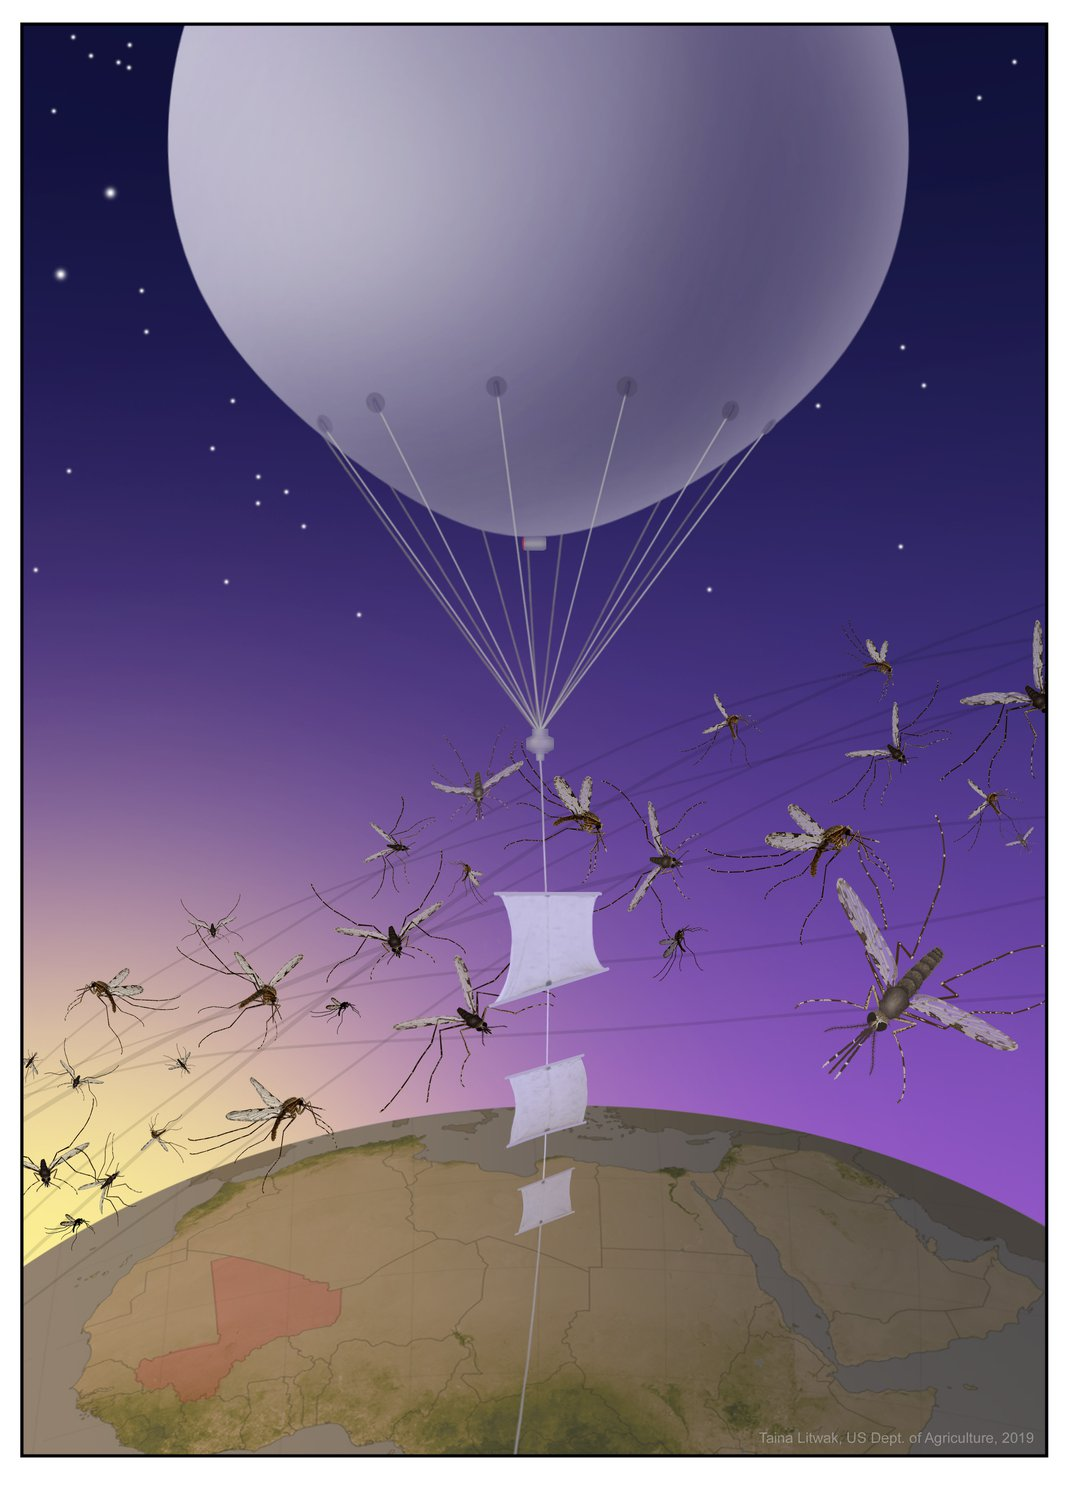 An illustration of a white balloon in the dark blue sky with mosquitoes flying around it.